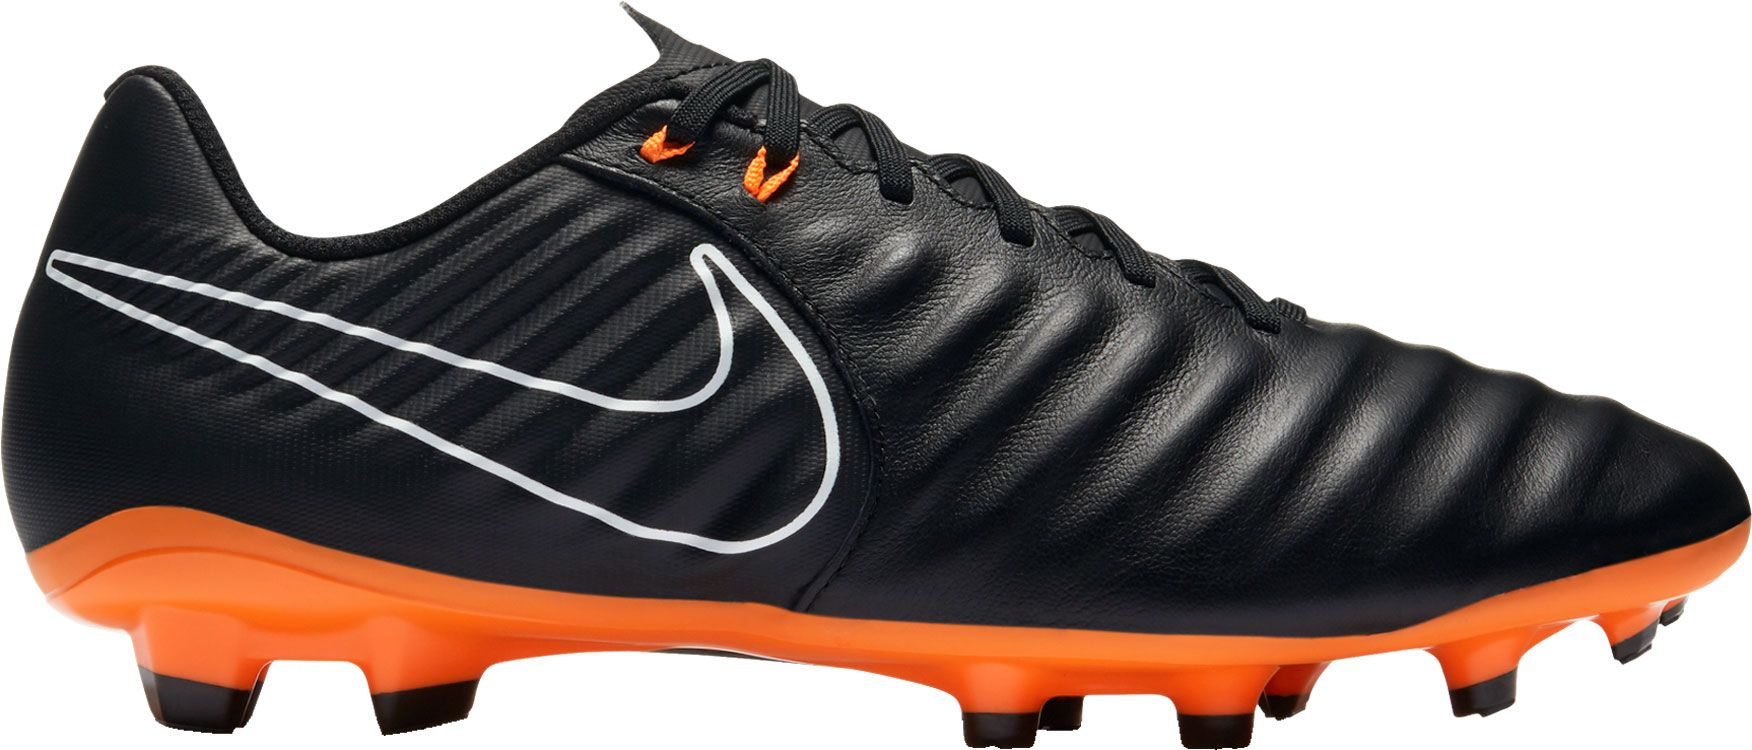 376daf3ce70 ... fast Nike Tiempo Legend 7 Academy FG Soccer Cleats DICKS Sportin ...